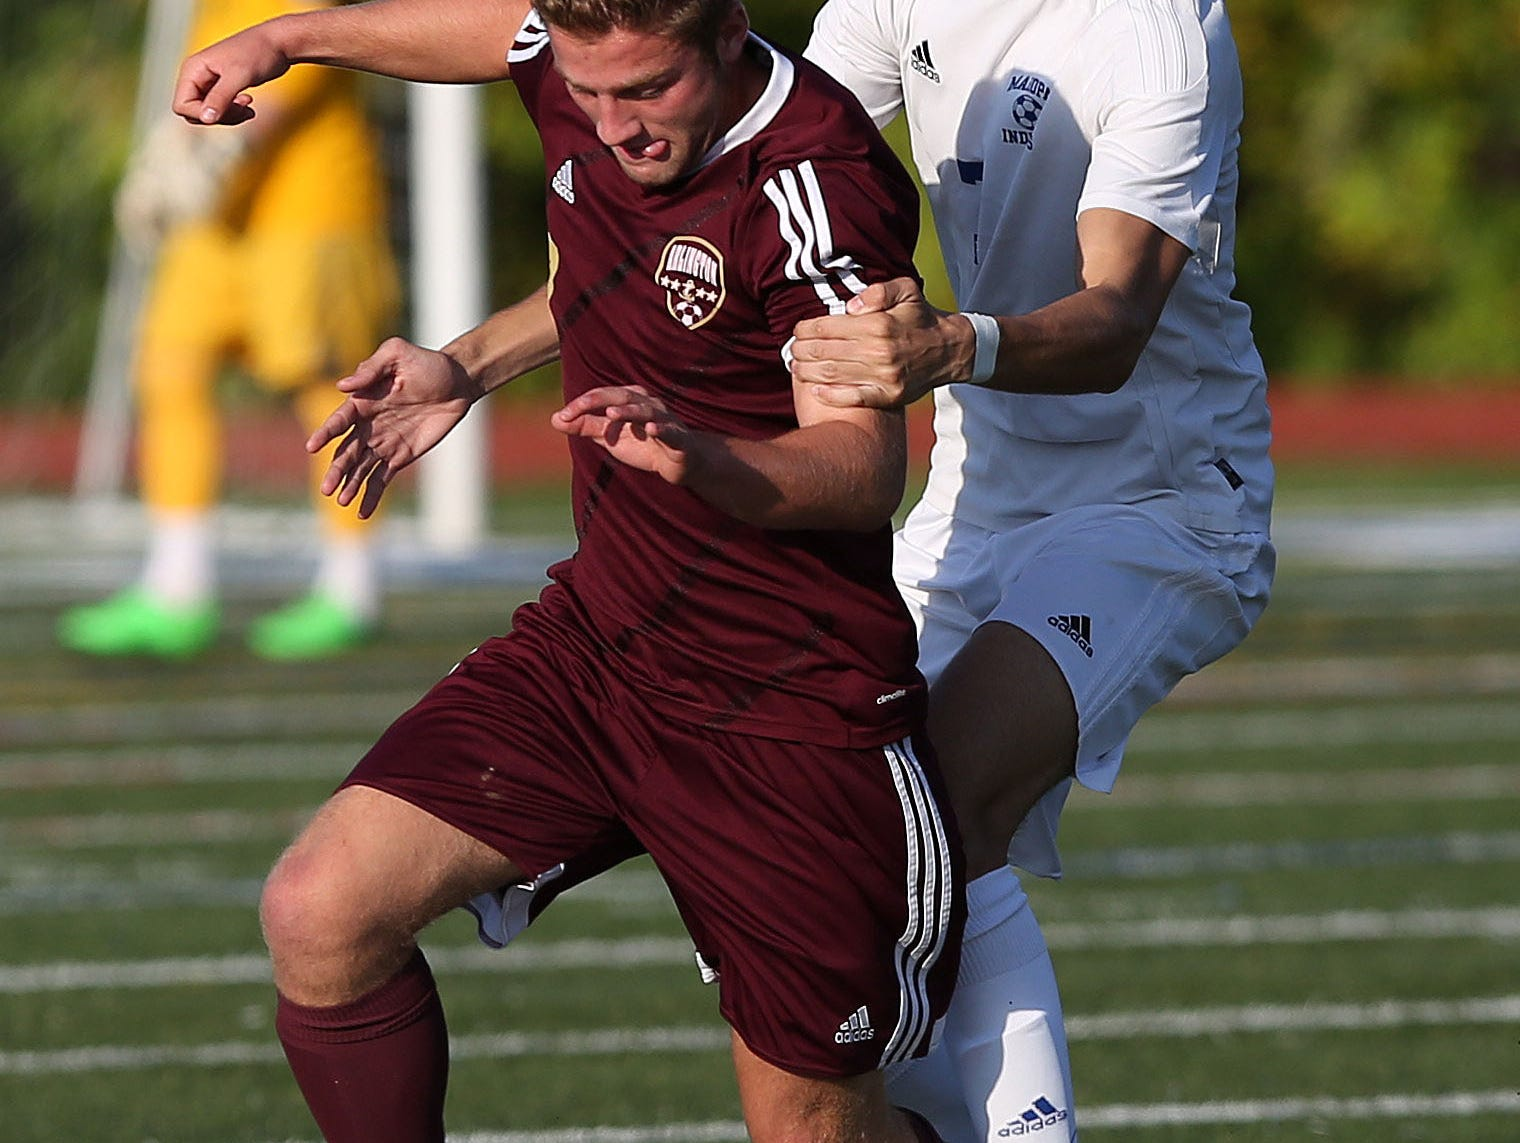 From left, Arlington's A.J. Ramputi (7) and Mahopac's Christian Shkreli (7) battle for ball control during a boys soccer game at Mahopac High School Oct. 8, 2015. Arlington won the game.